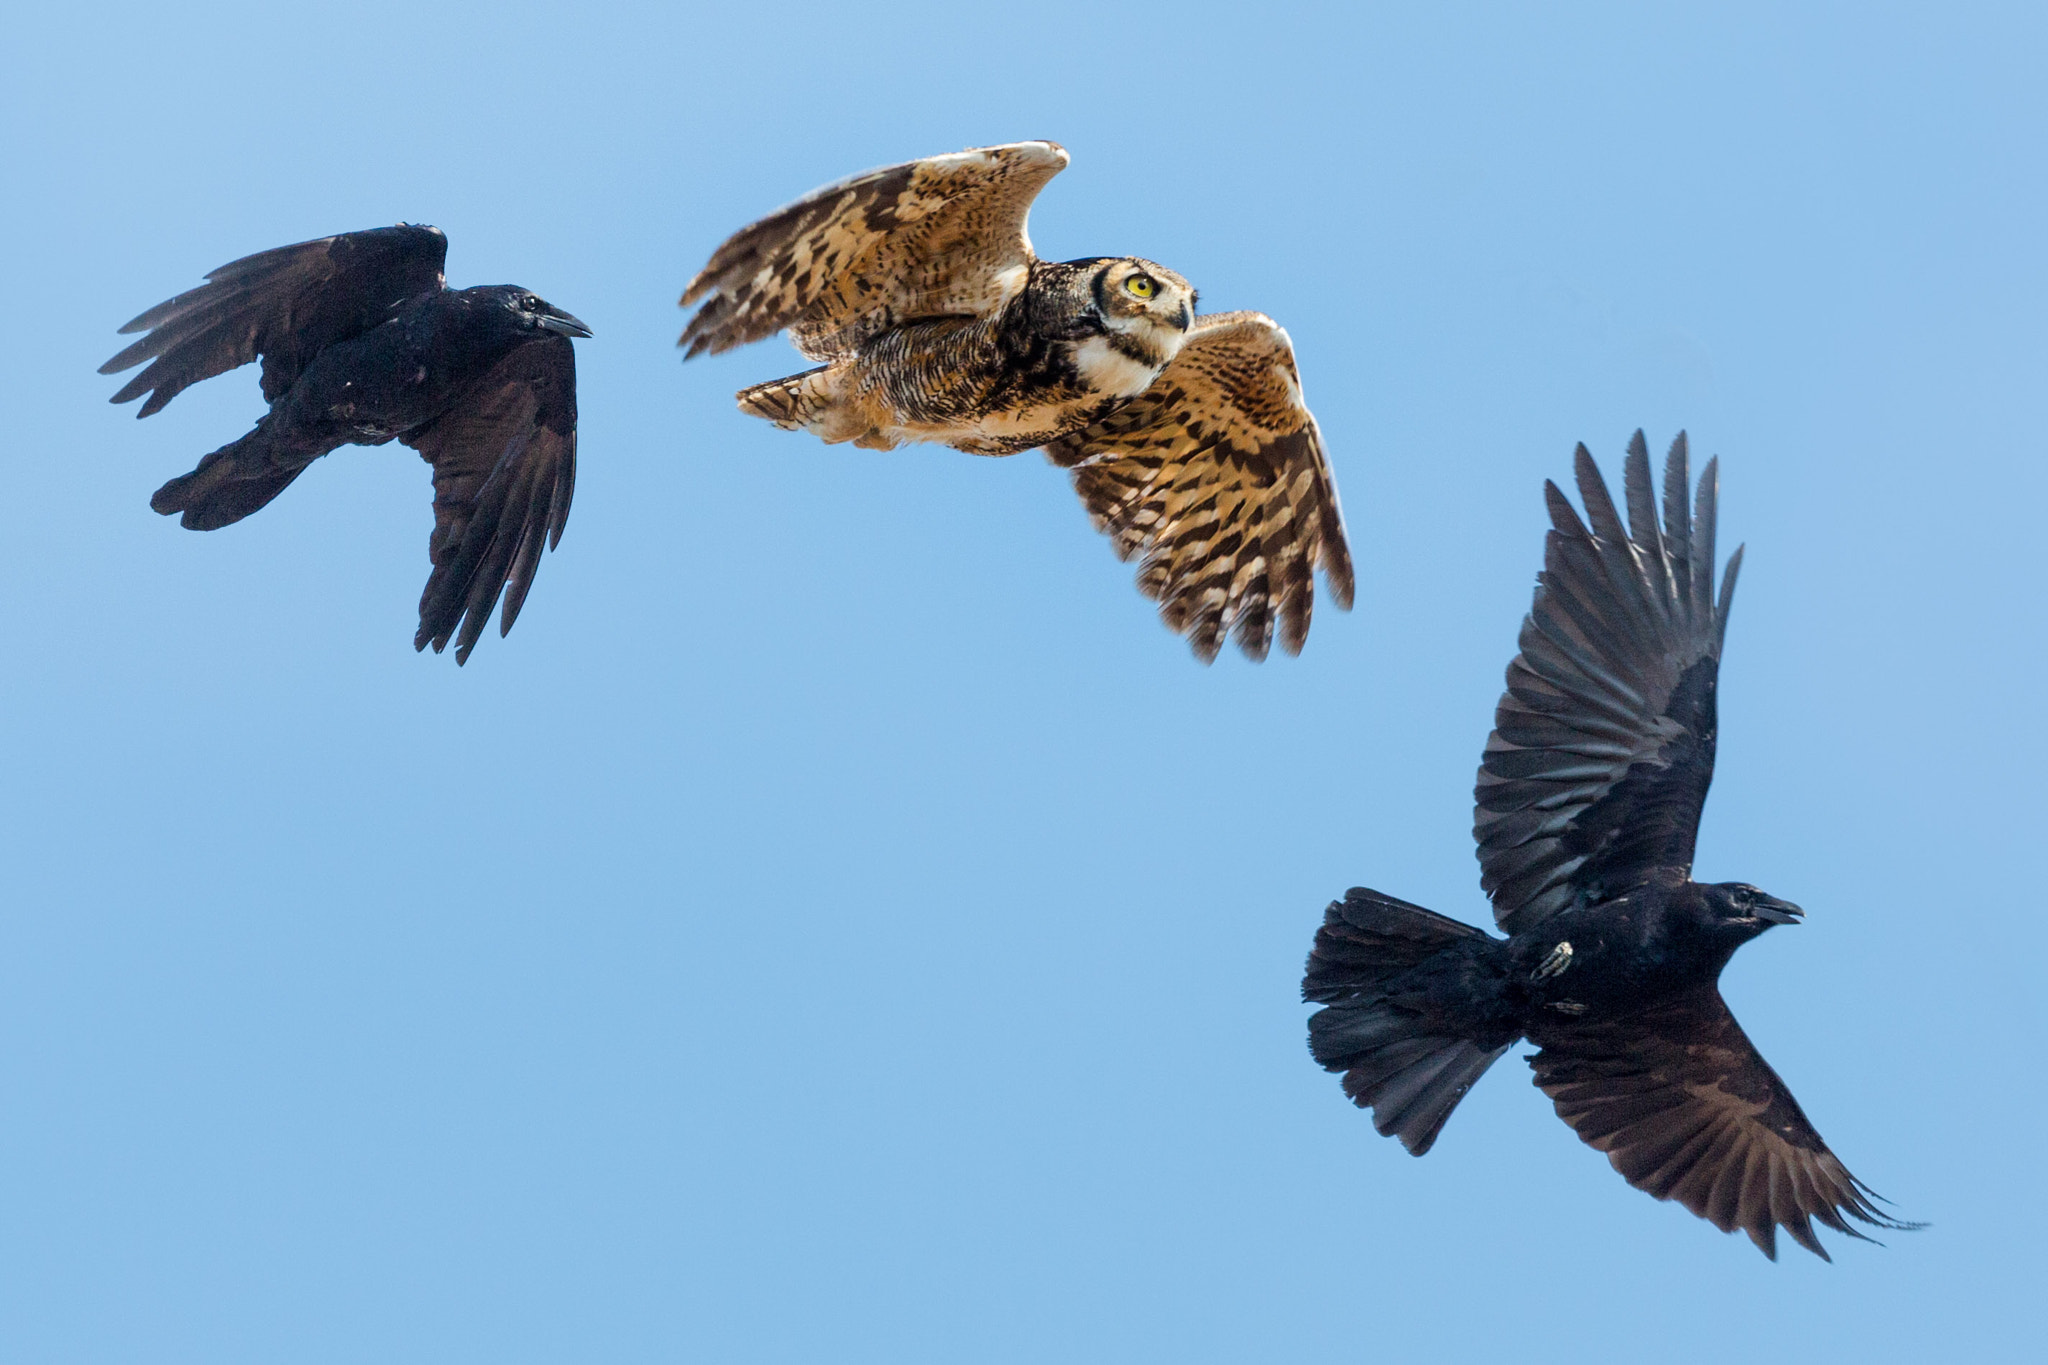 Photograph Crows chasing Great Horned Owl by Tony Northrup on 500px